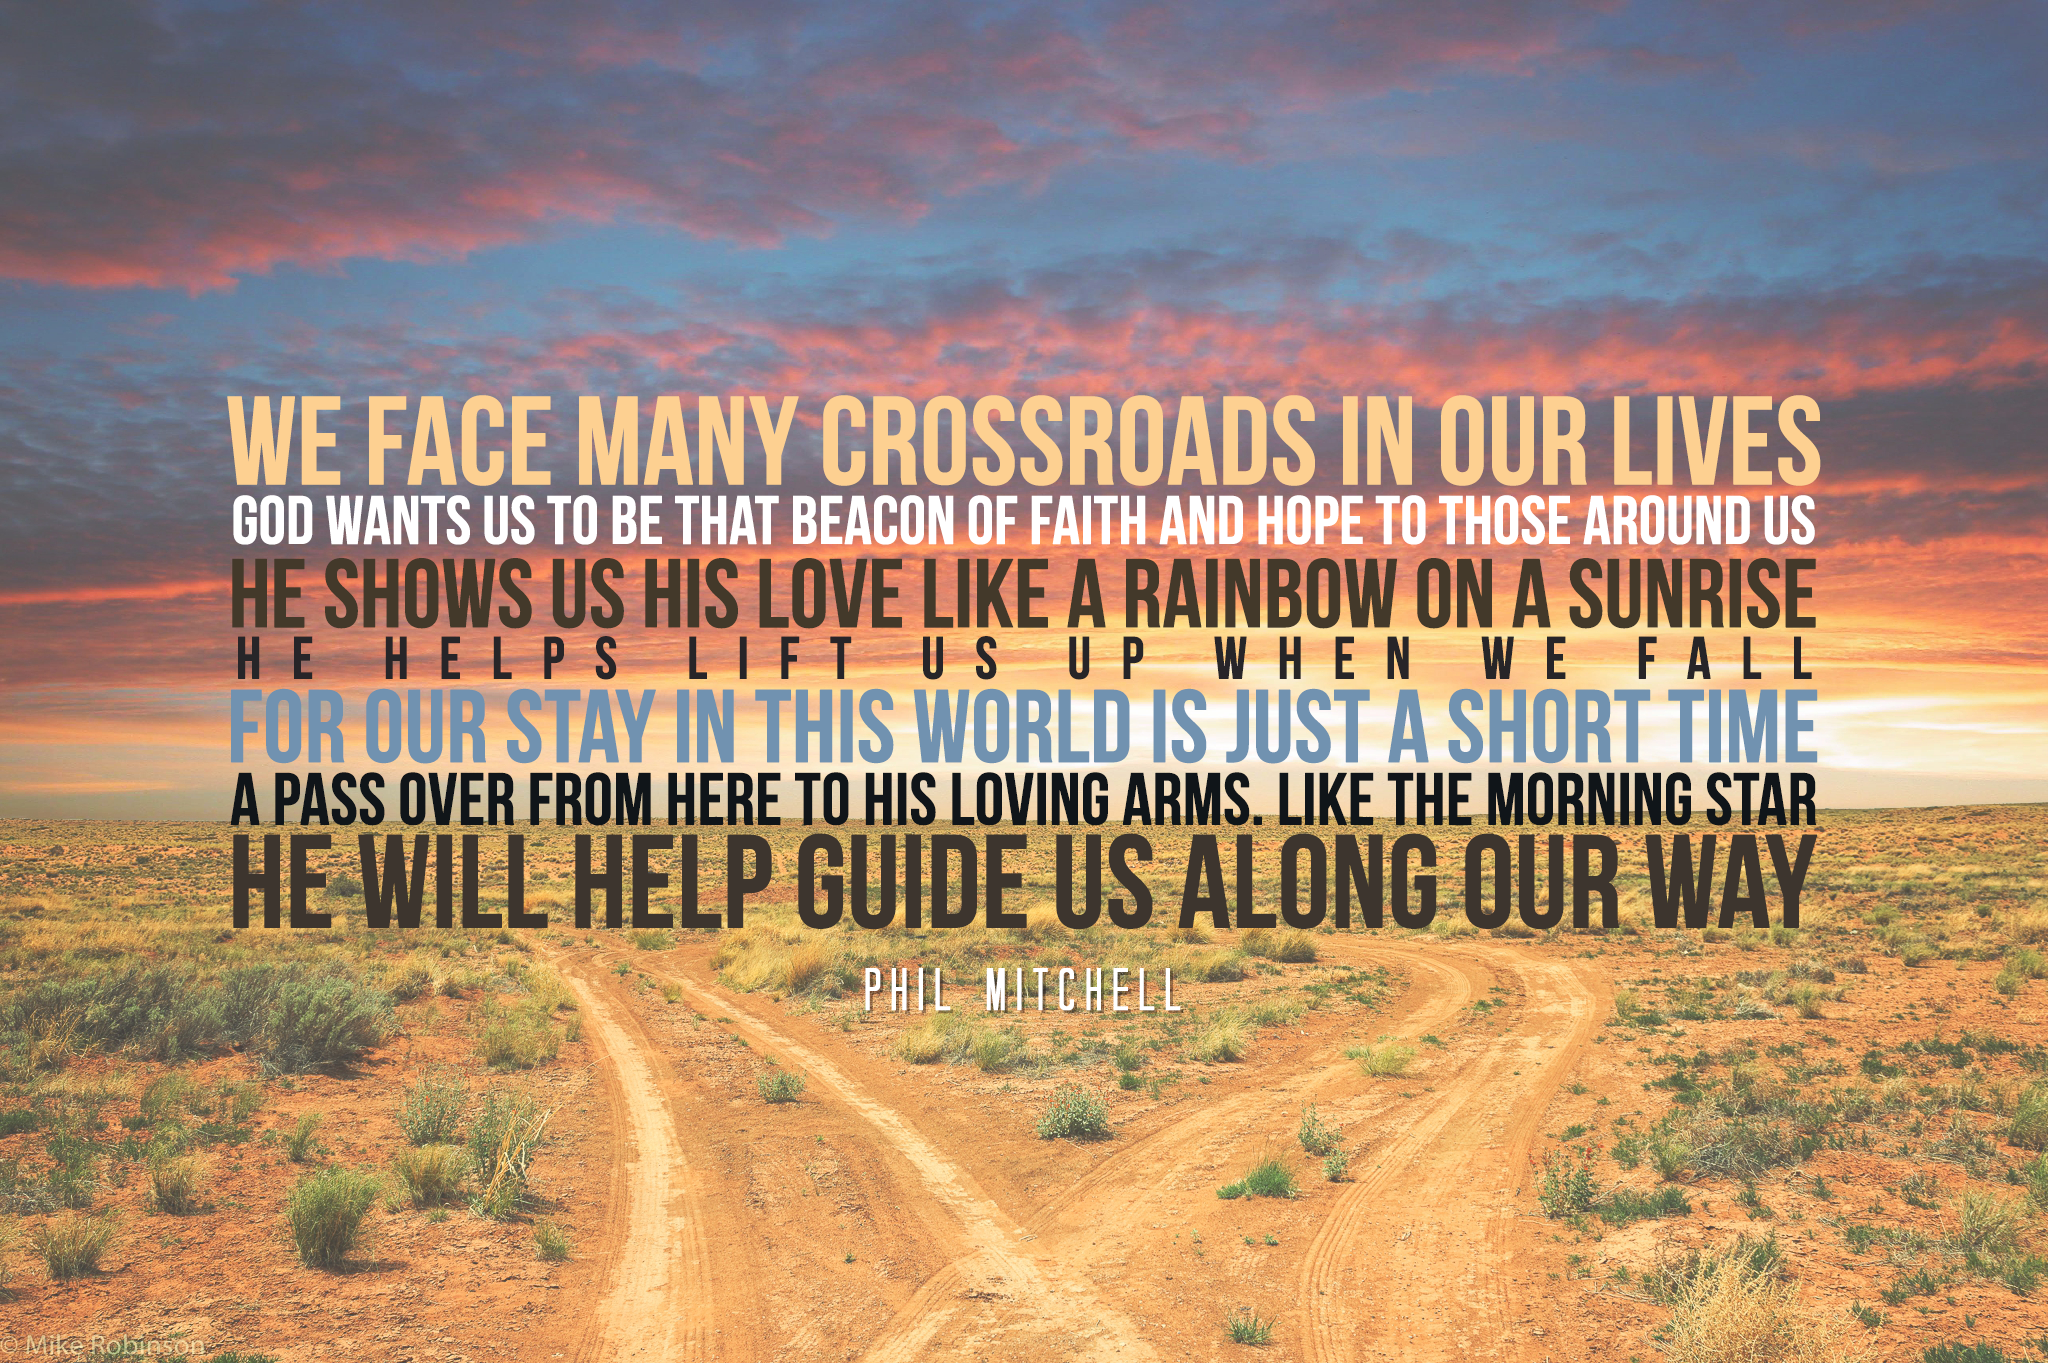 We face many crossroads in our life. God wants us to be